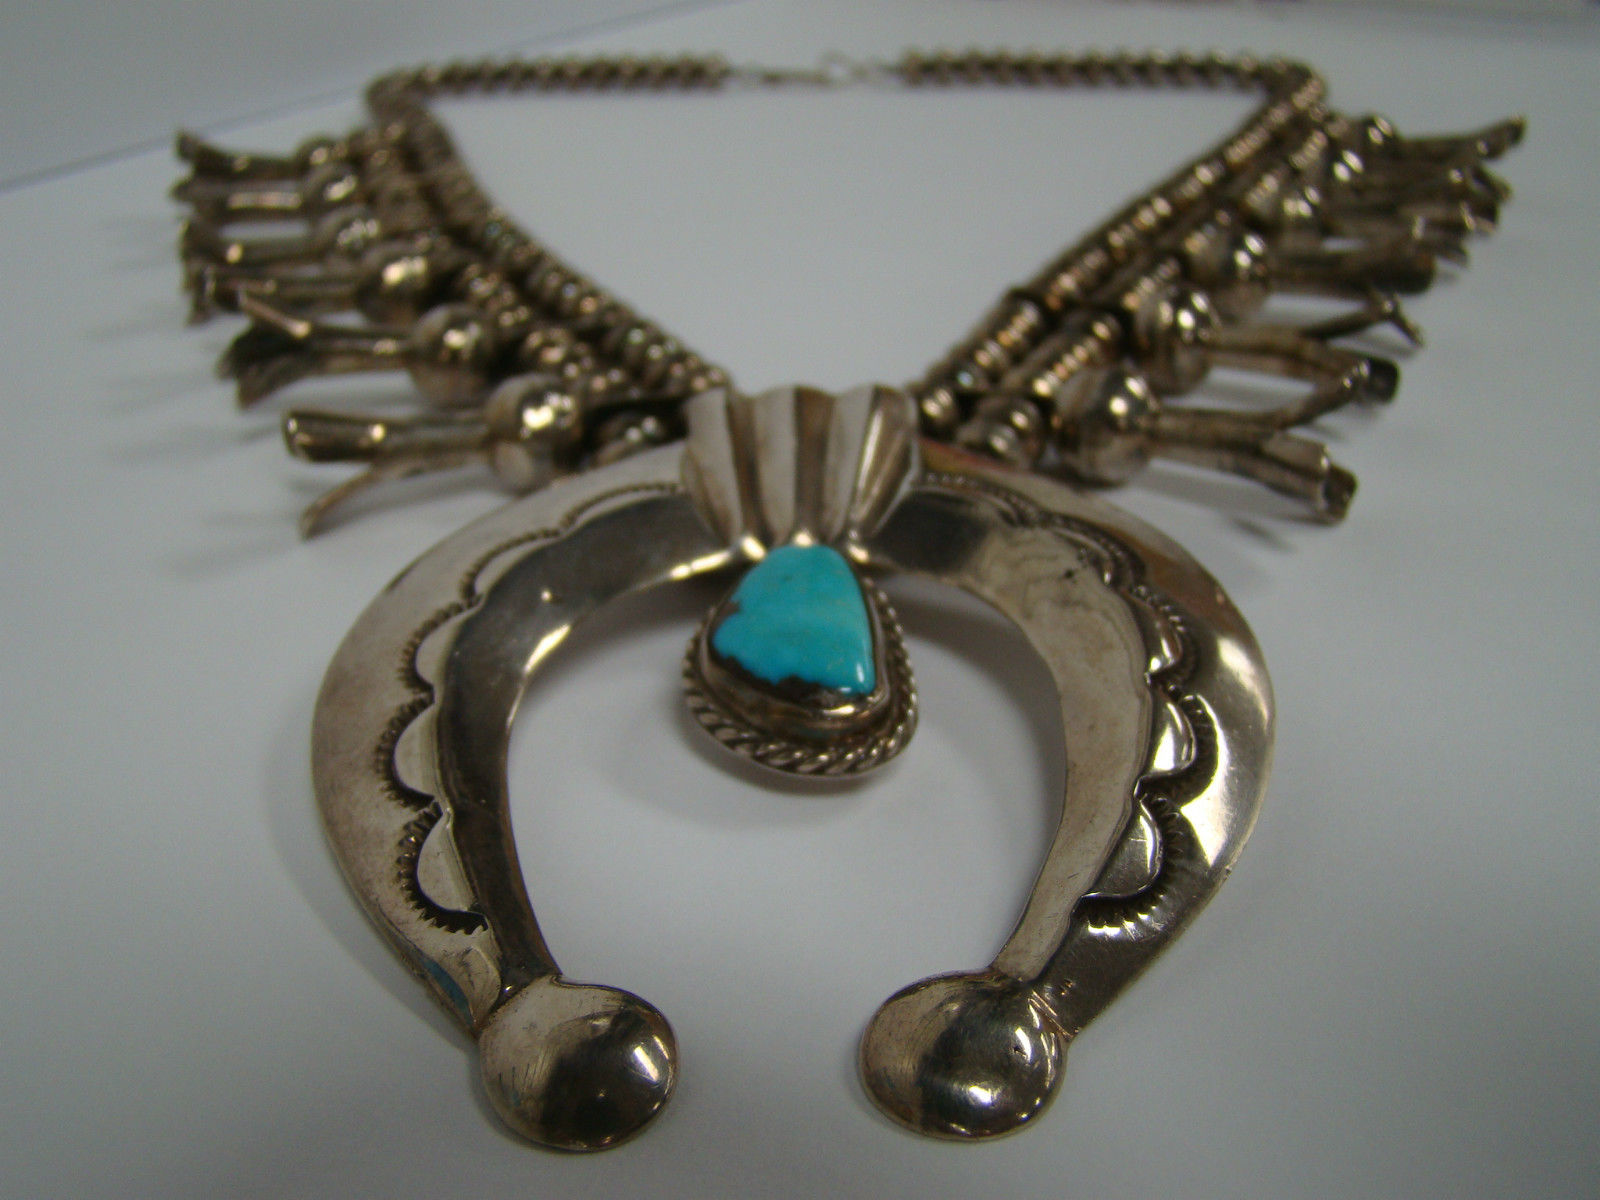 necklace strand the category mixed plaza malouf jewelry beads archives mine turquoise american triple artists native on